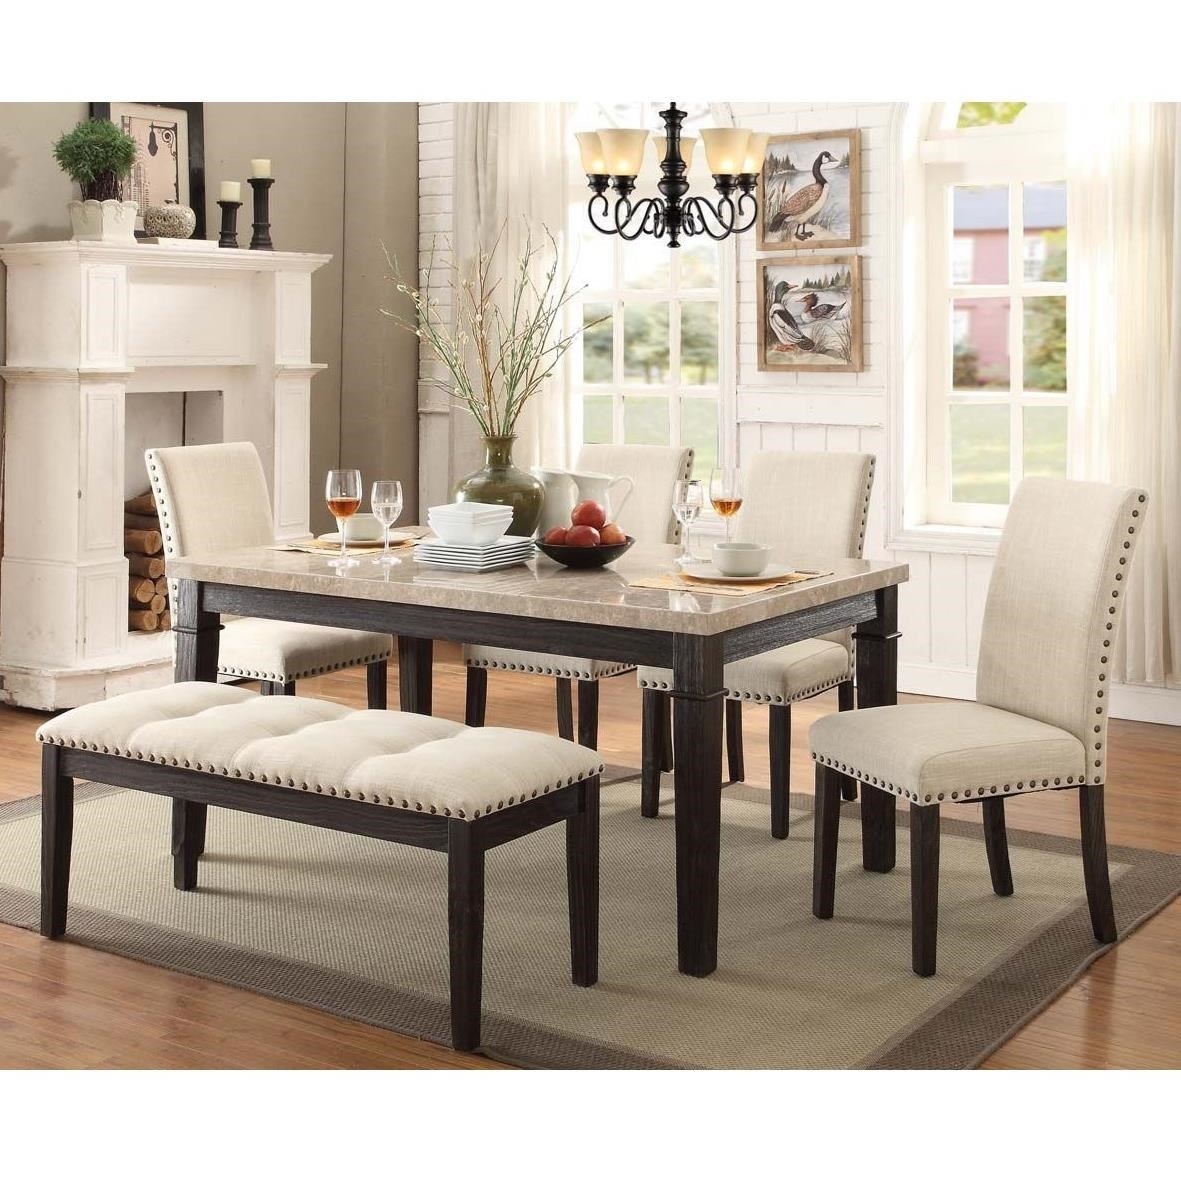 Black Dining Room Table And Chairs Greystone Table And Chair Set With Upholstered Bench By Elements International At Household Furniture